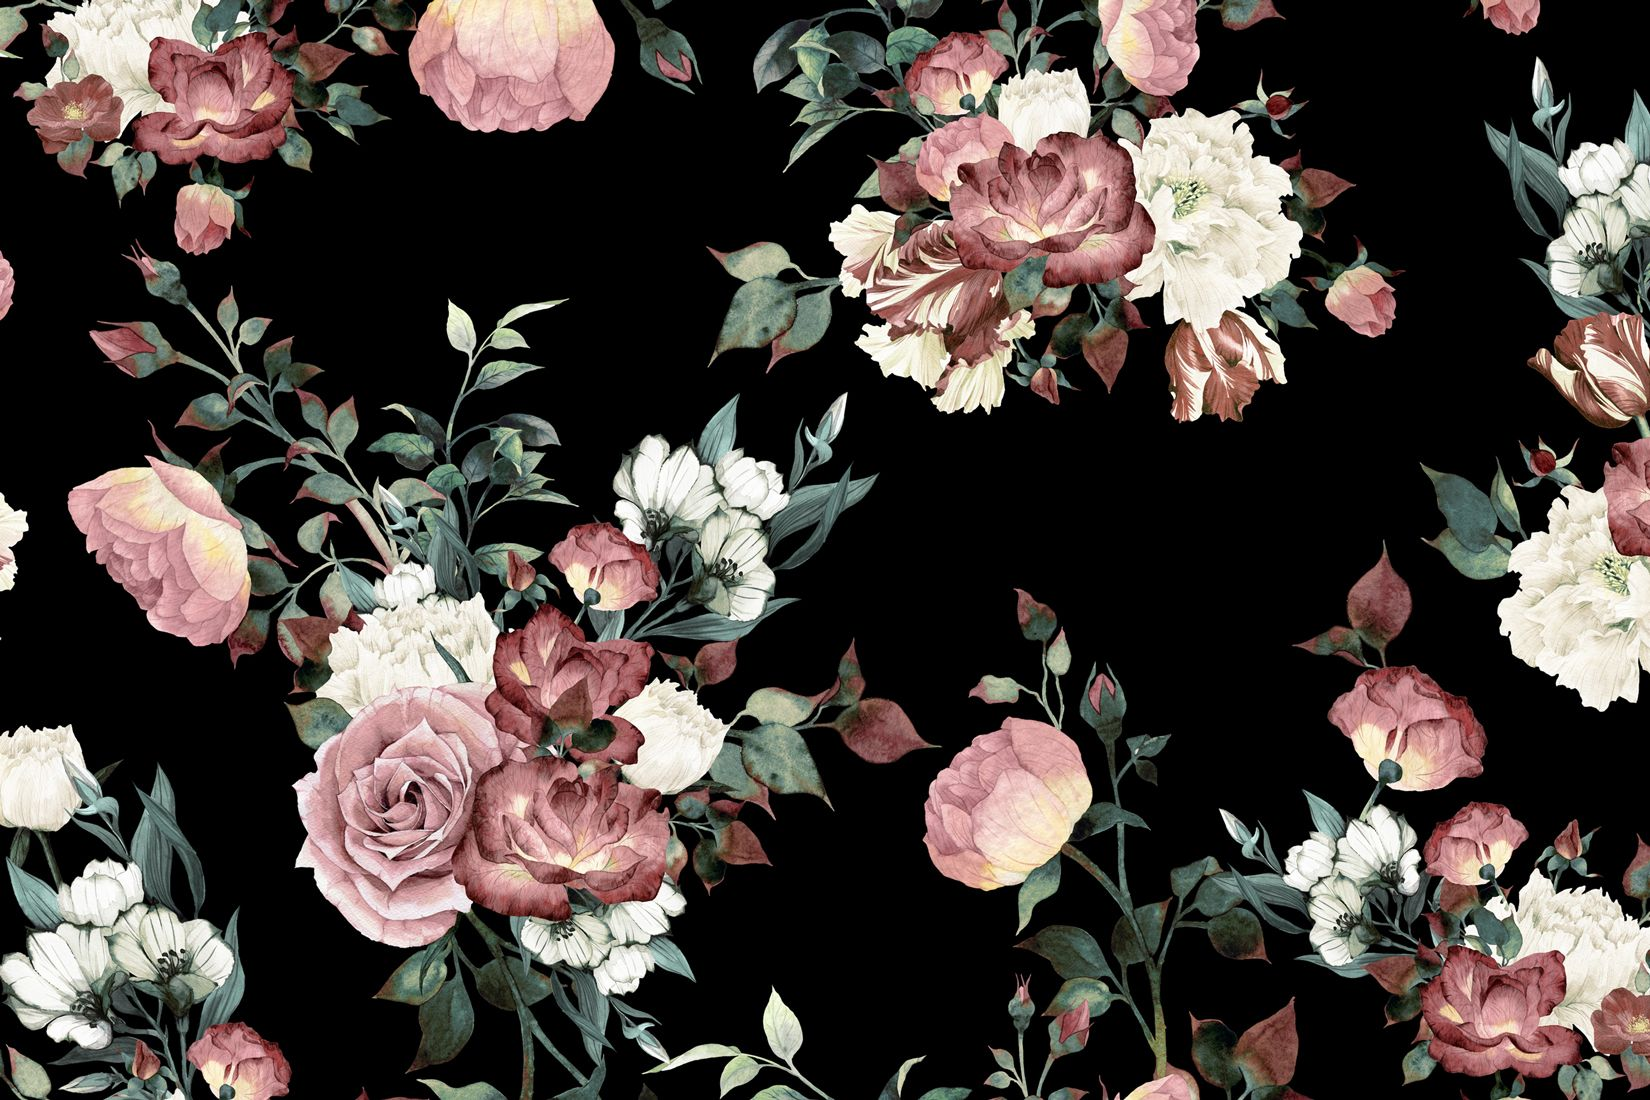 Hd Floral Wallpaper Posted By John Thompson